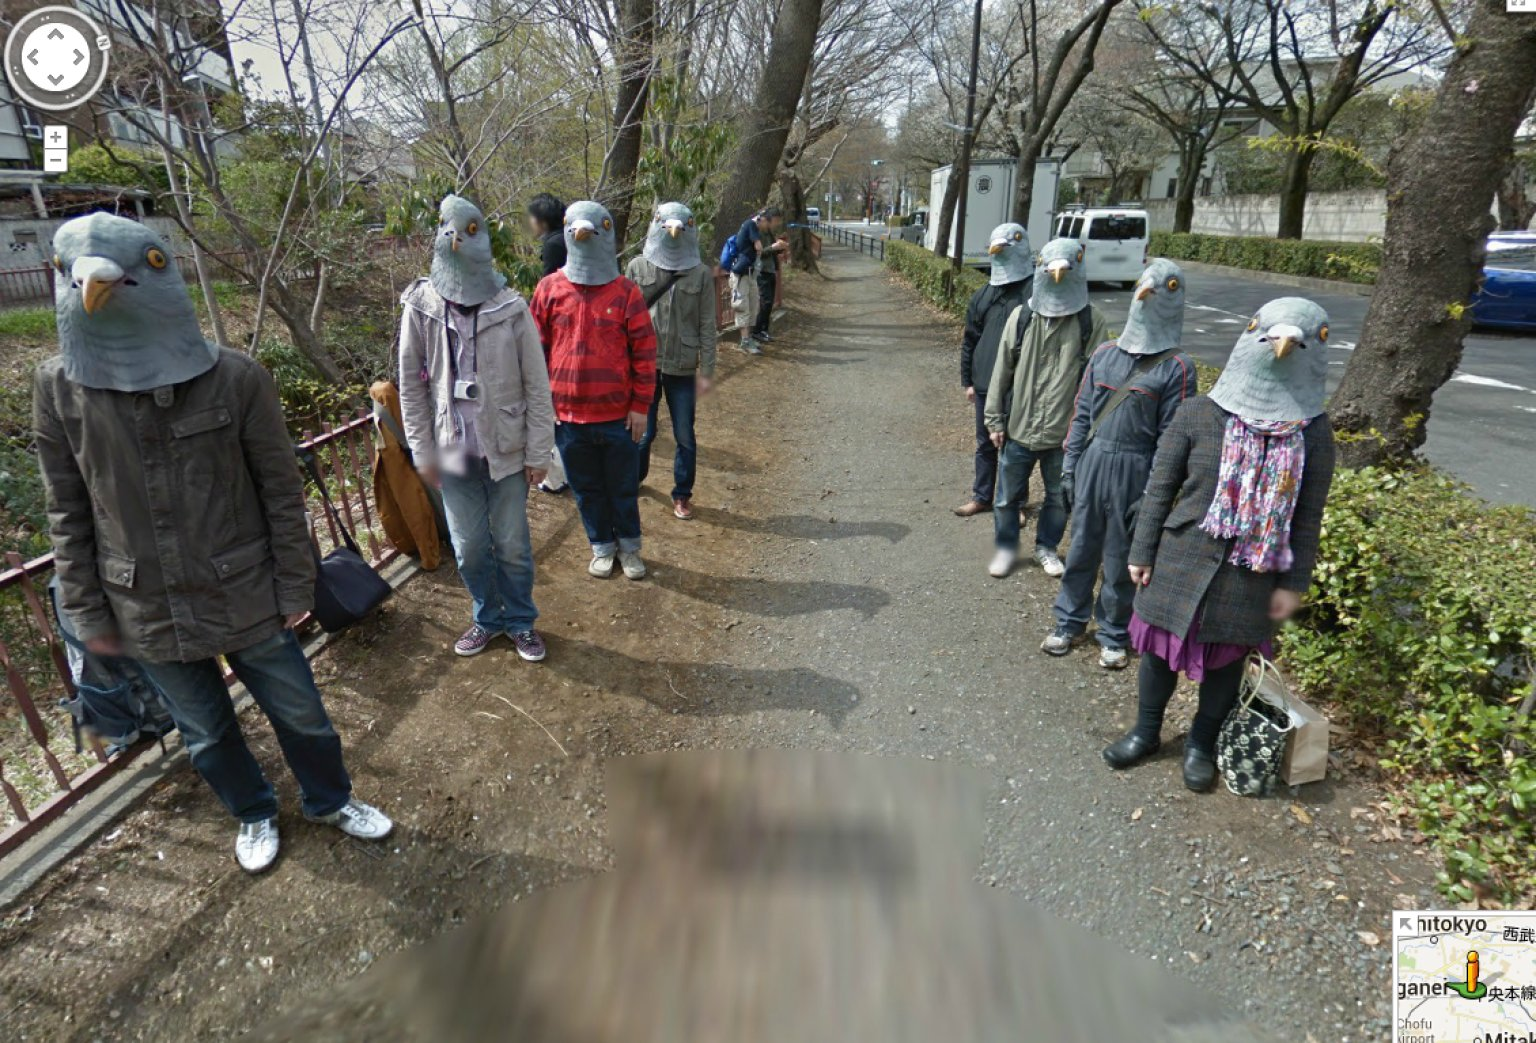 japan 39 s google street view pigeonheads are hilariously creepy photo huffpost. Black Bedroom Furniture Sets. Home Design Ideas